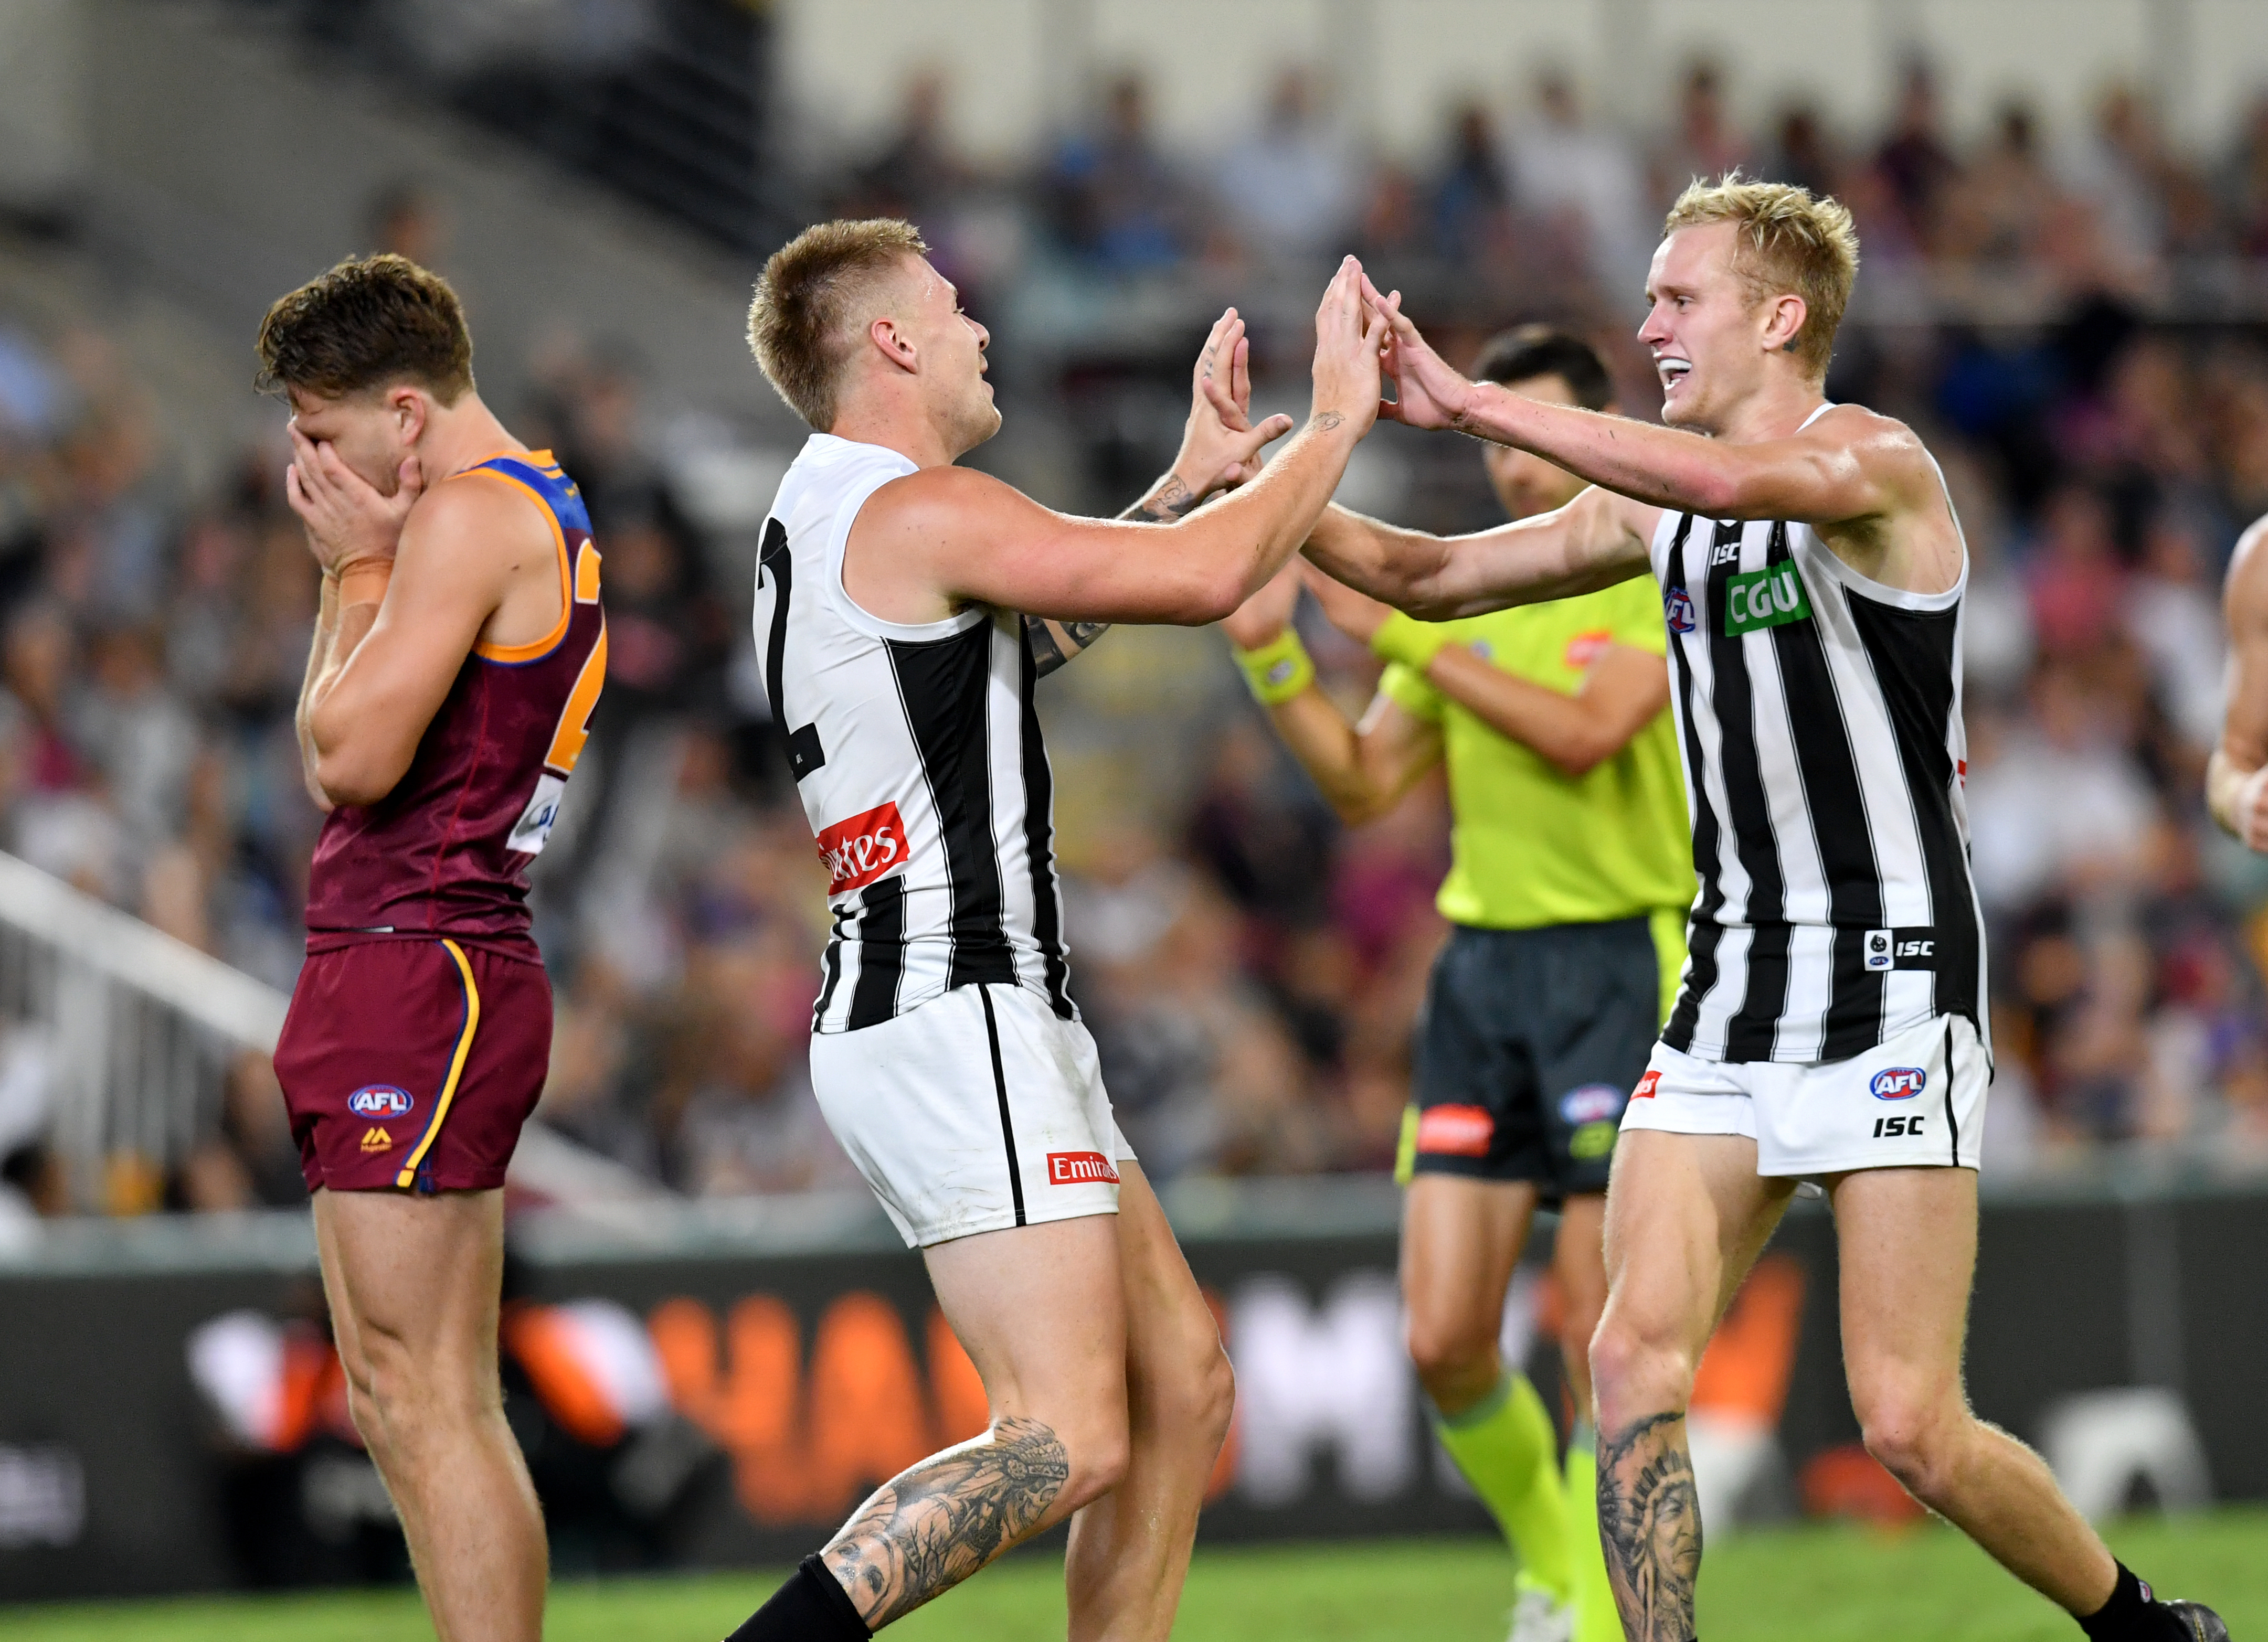 Collingwood cruise to victory in Brisbane